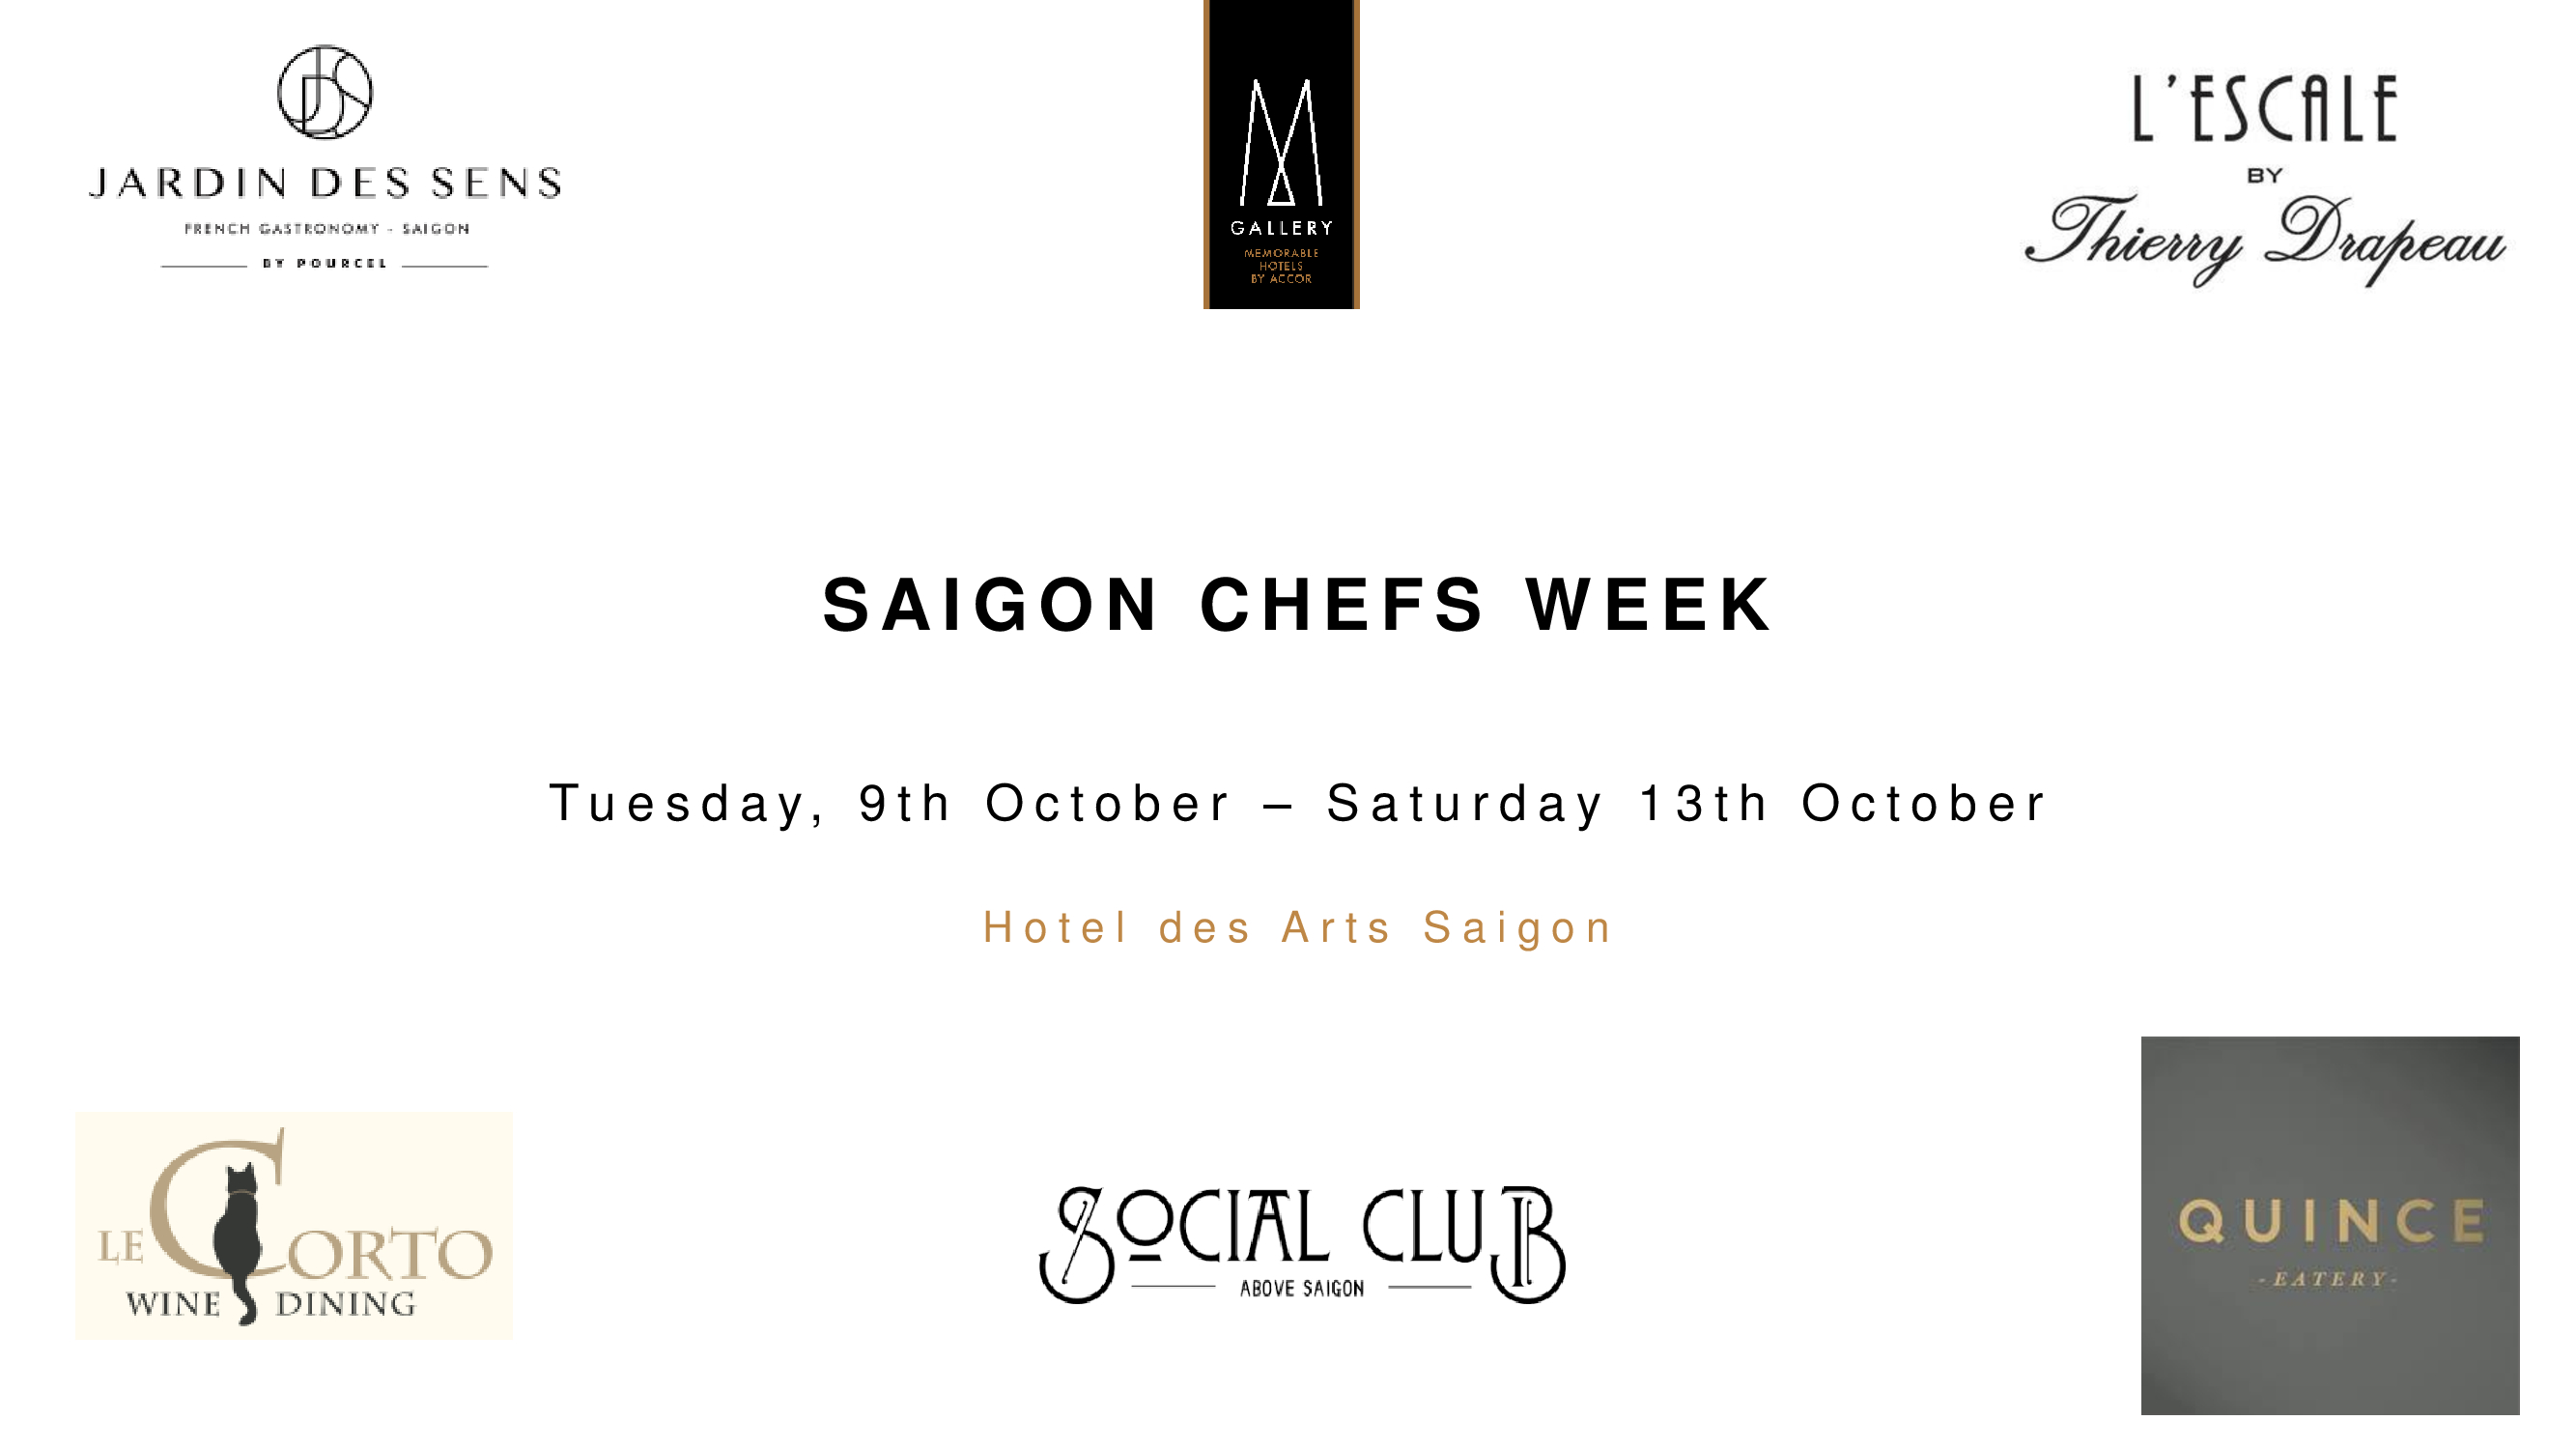 Saigon Chefs Week Event Sep 09th to Sep 13th